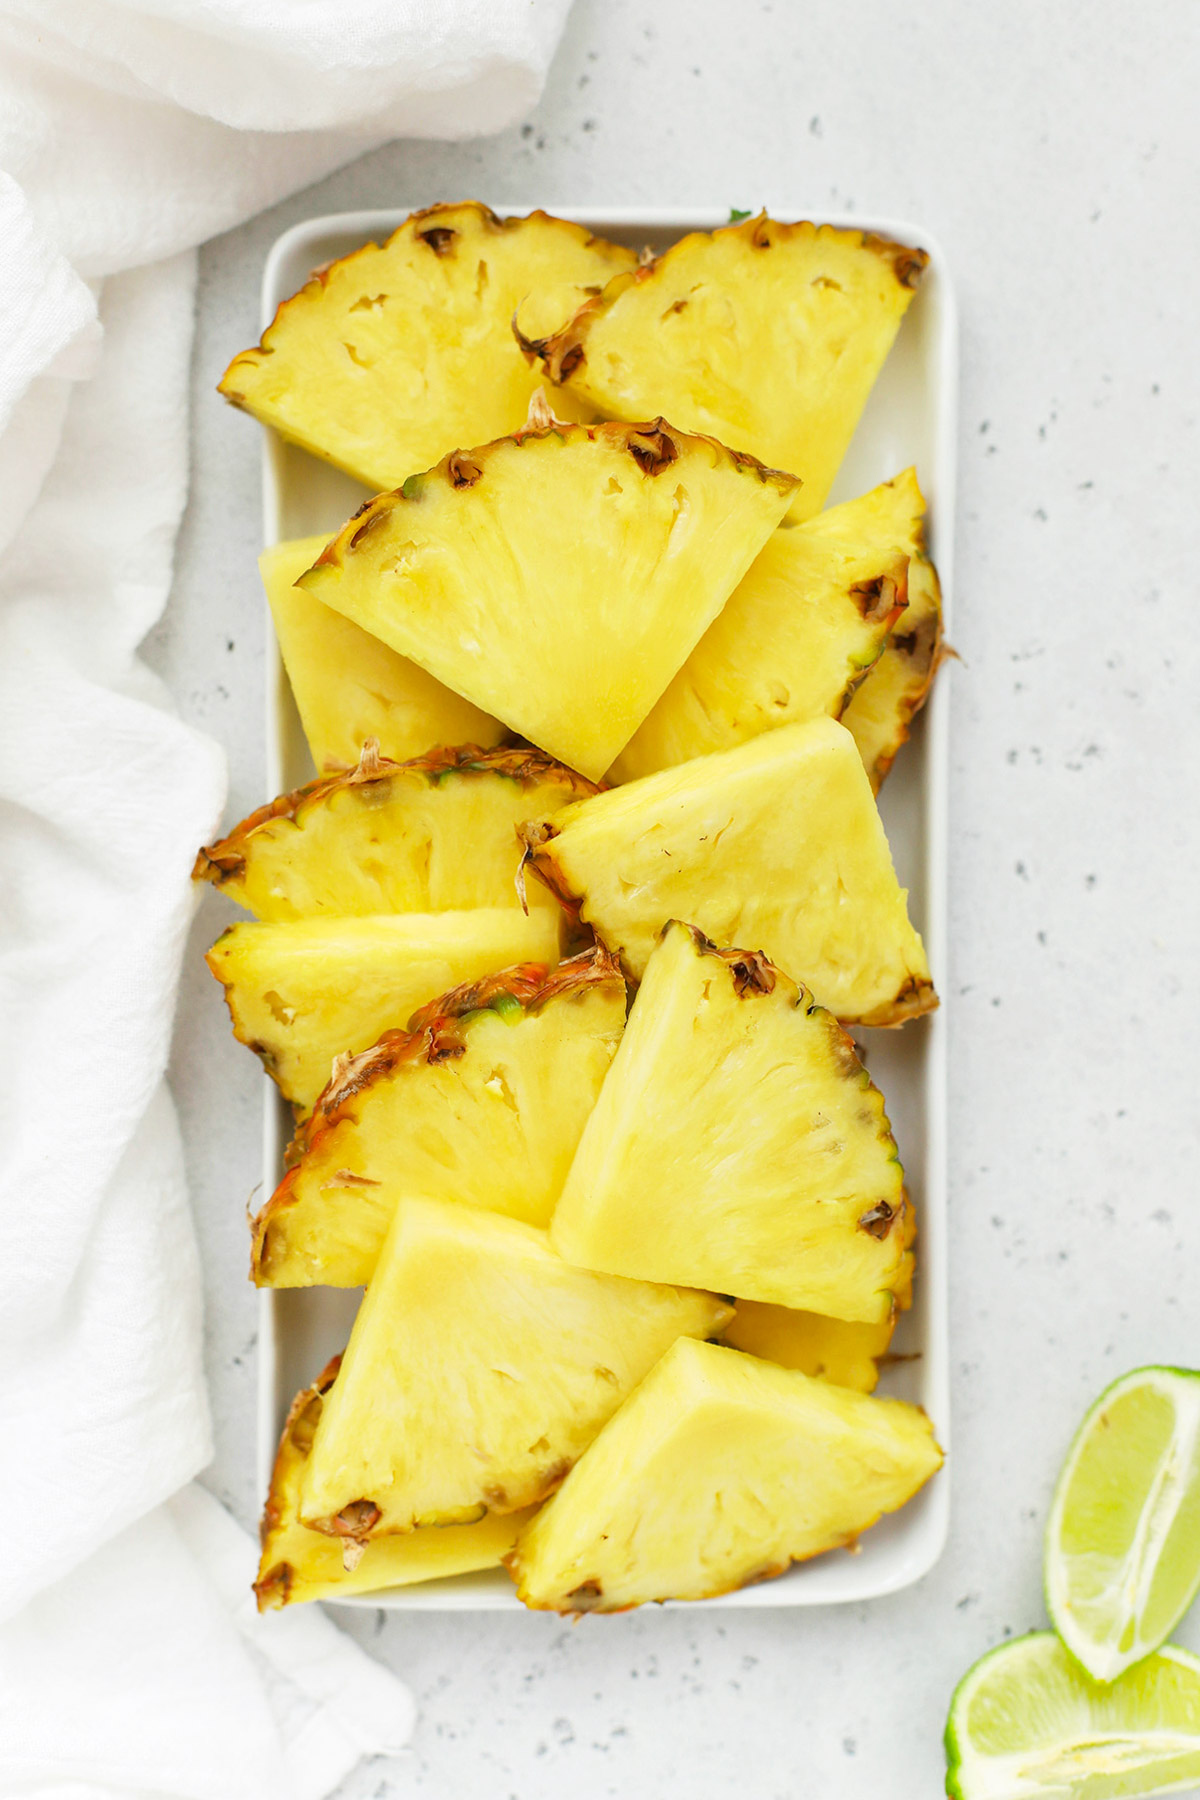 Overhead view of a rectangular platter of pineapple wedges on a white background